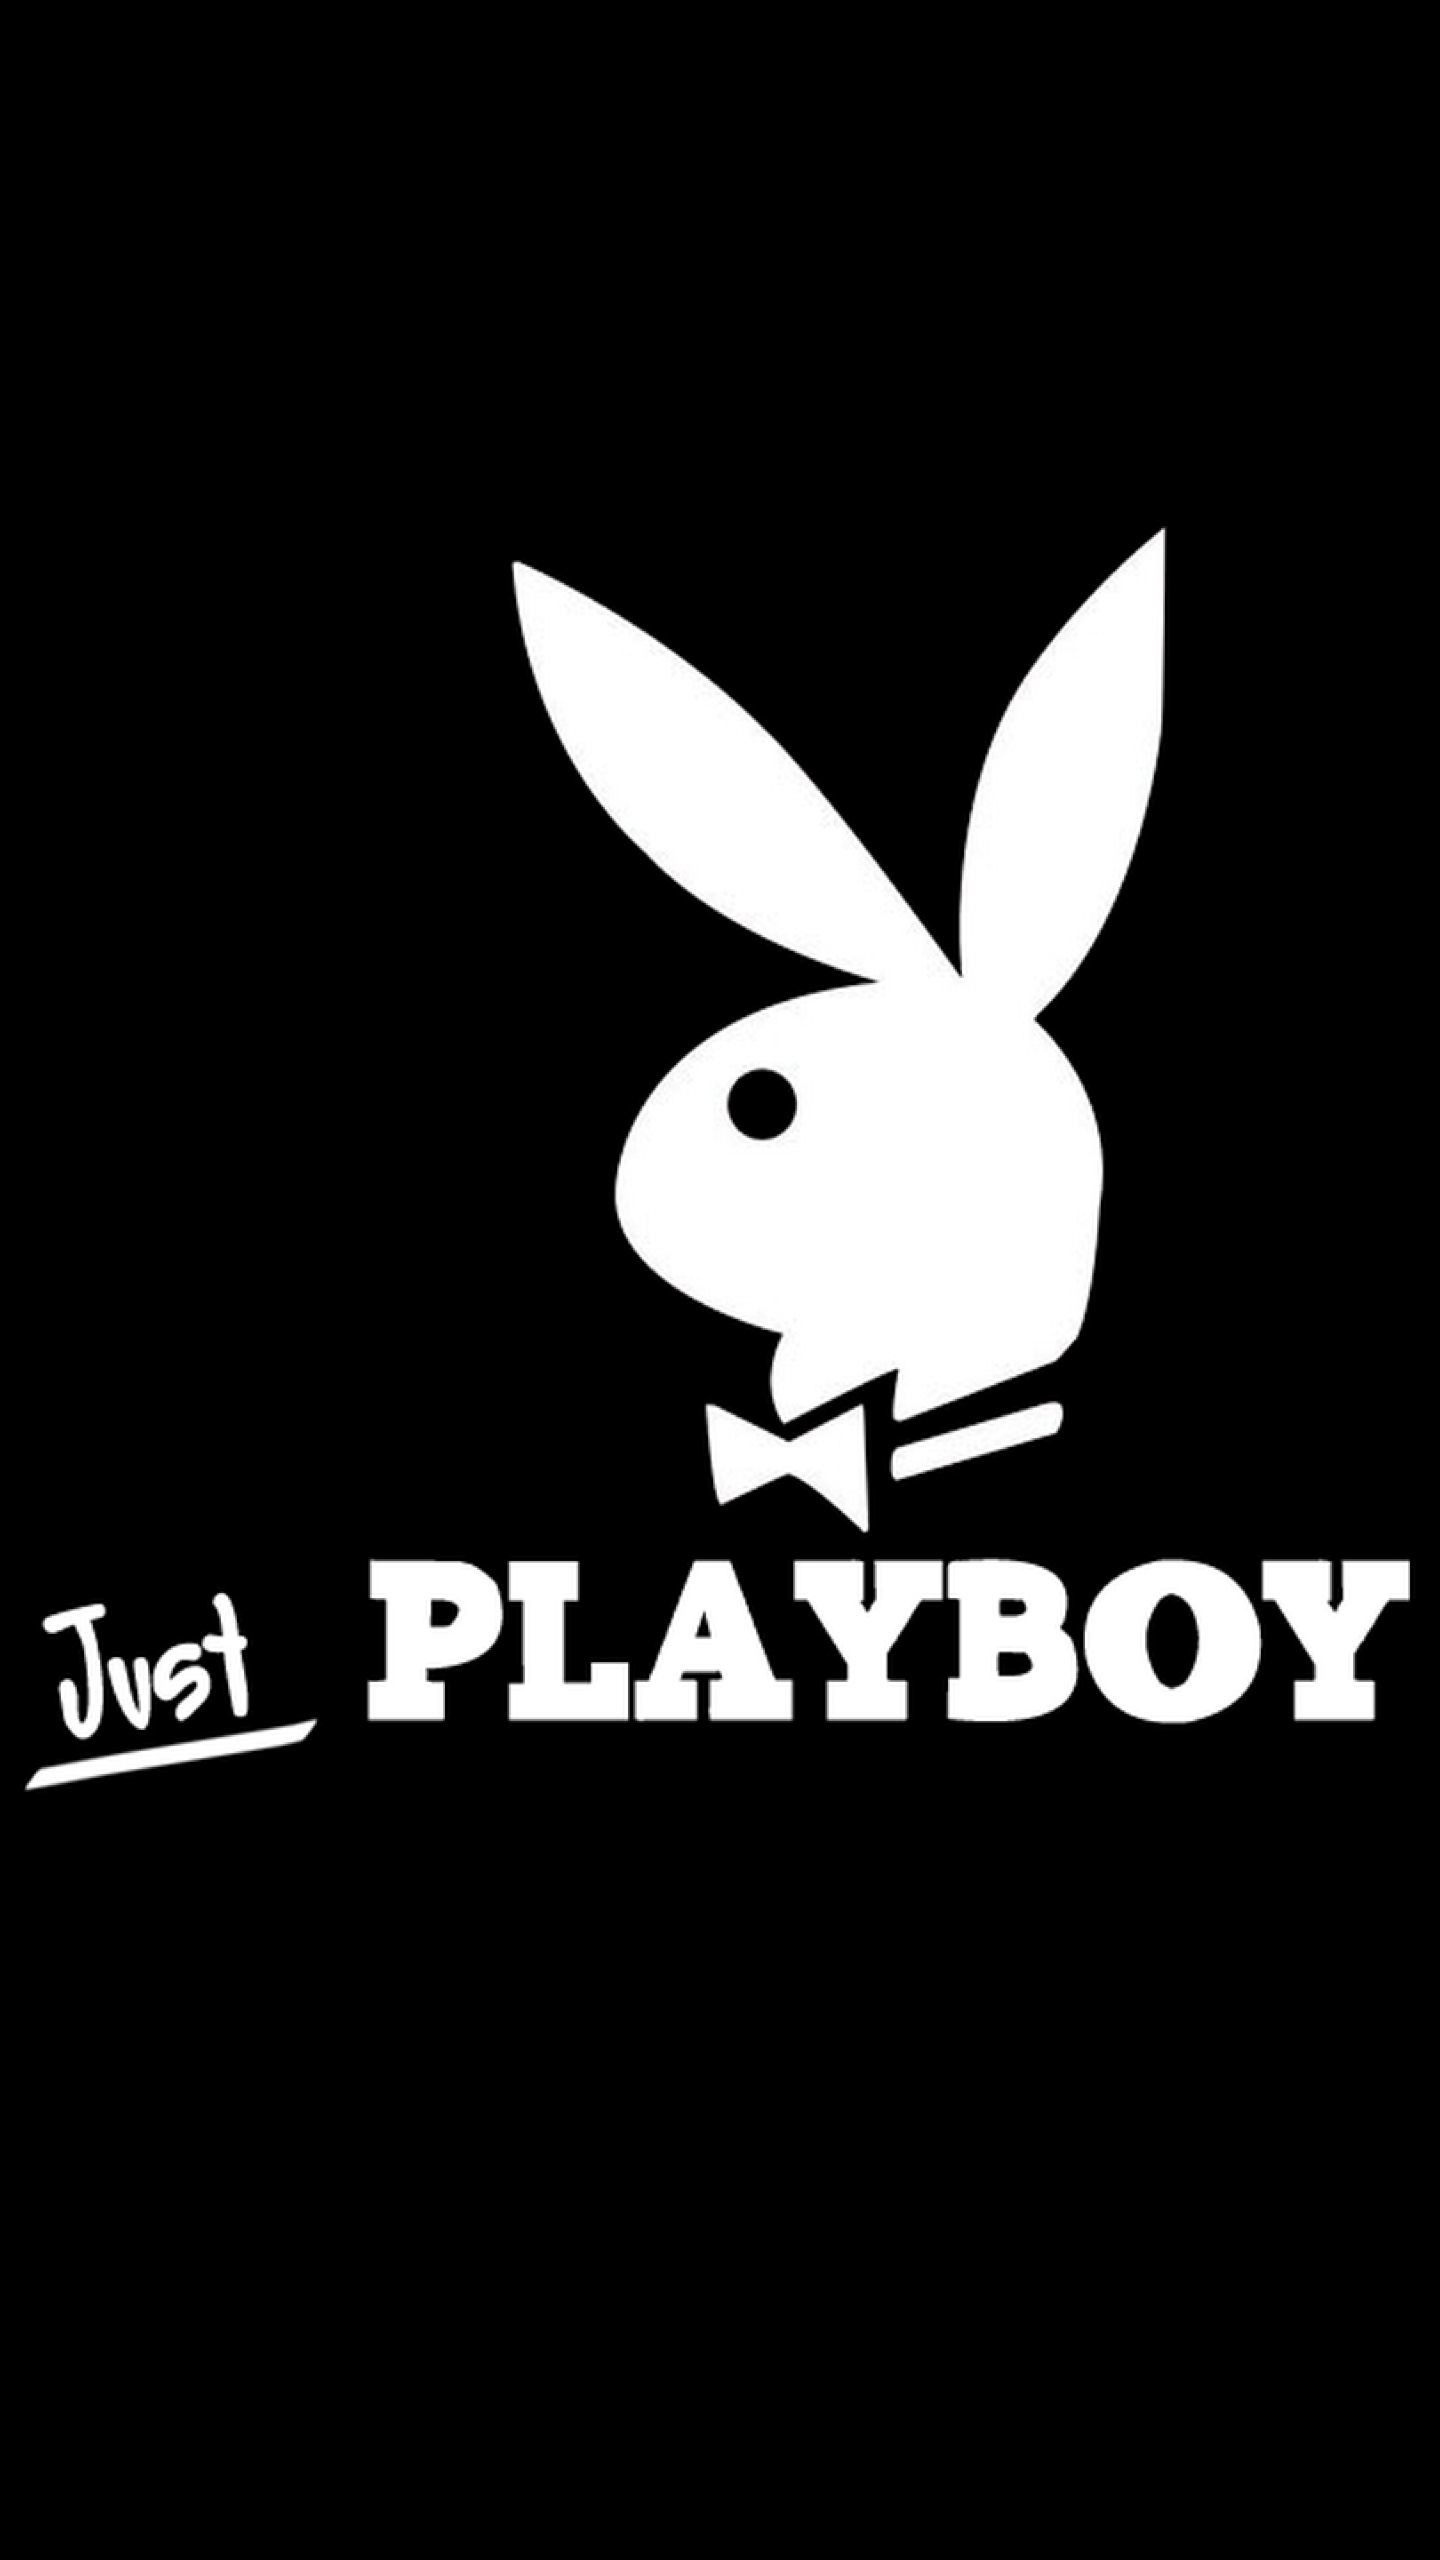 Playboy Wallpaper Hd 67 Images